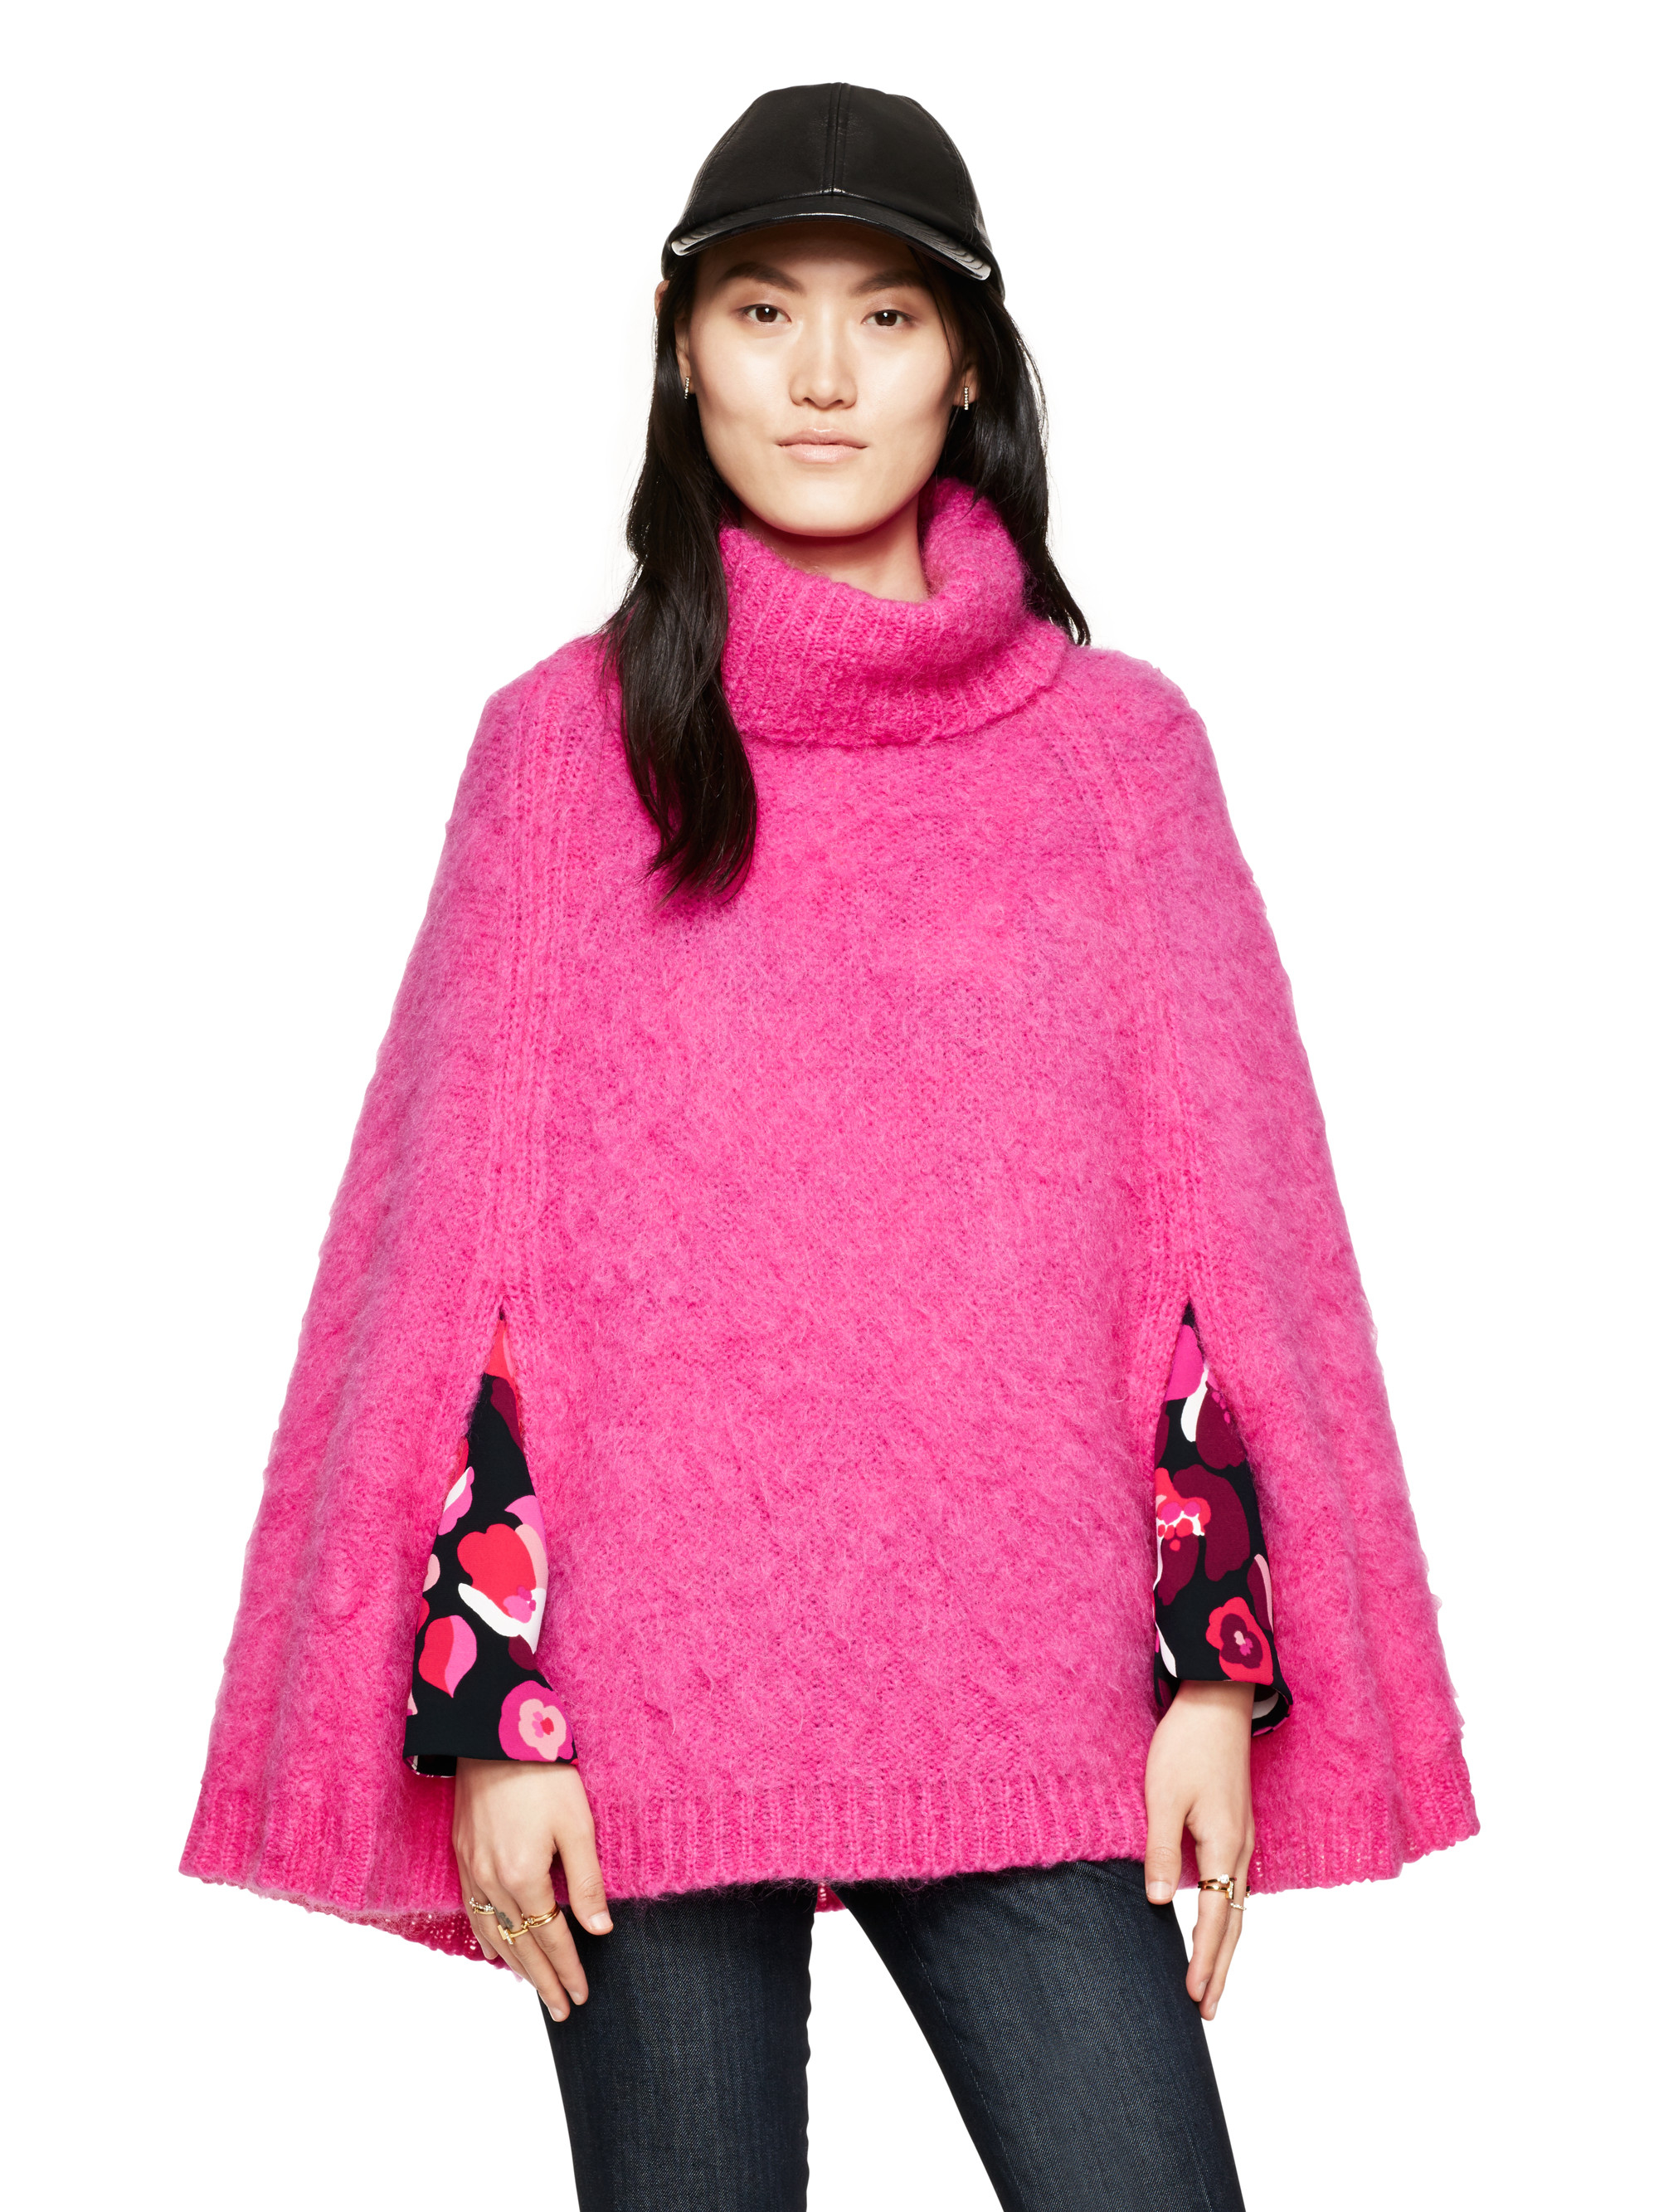 Kate spade new york Chunky Knit Sweater Cape in Pink | Lyst